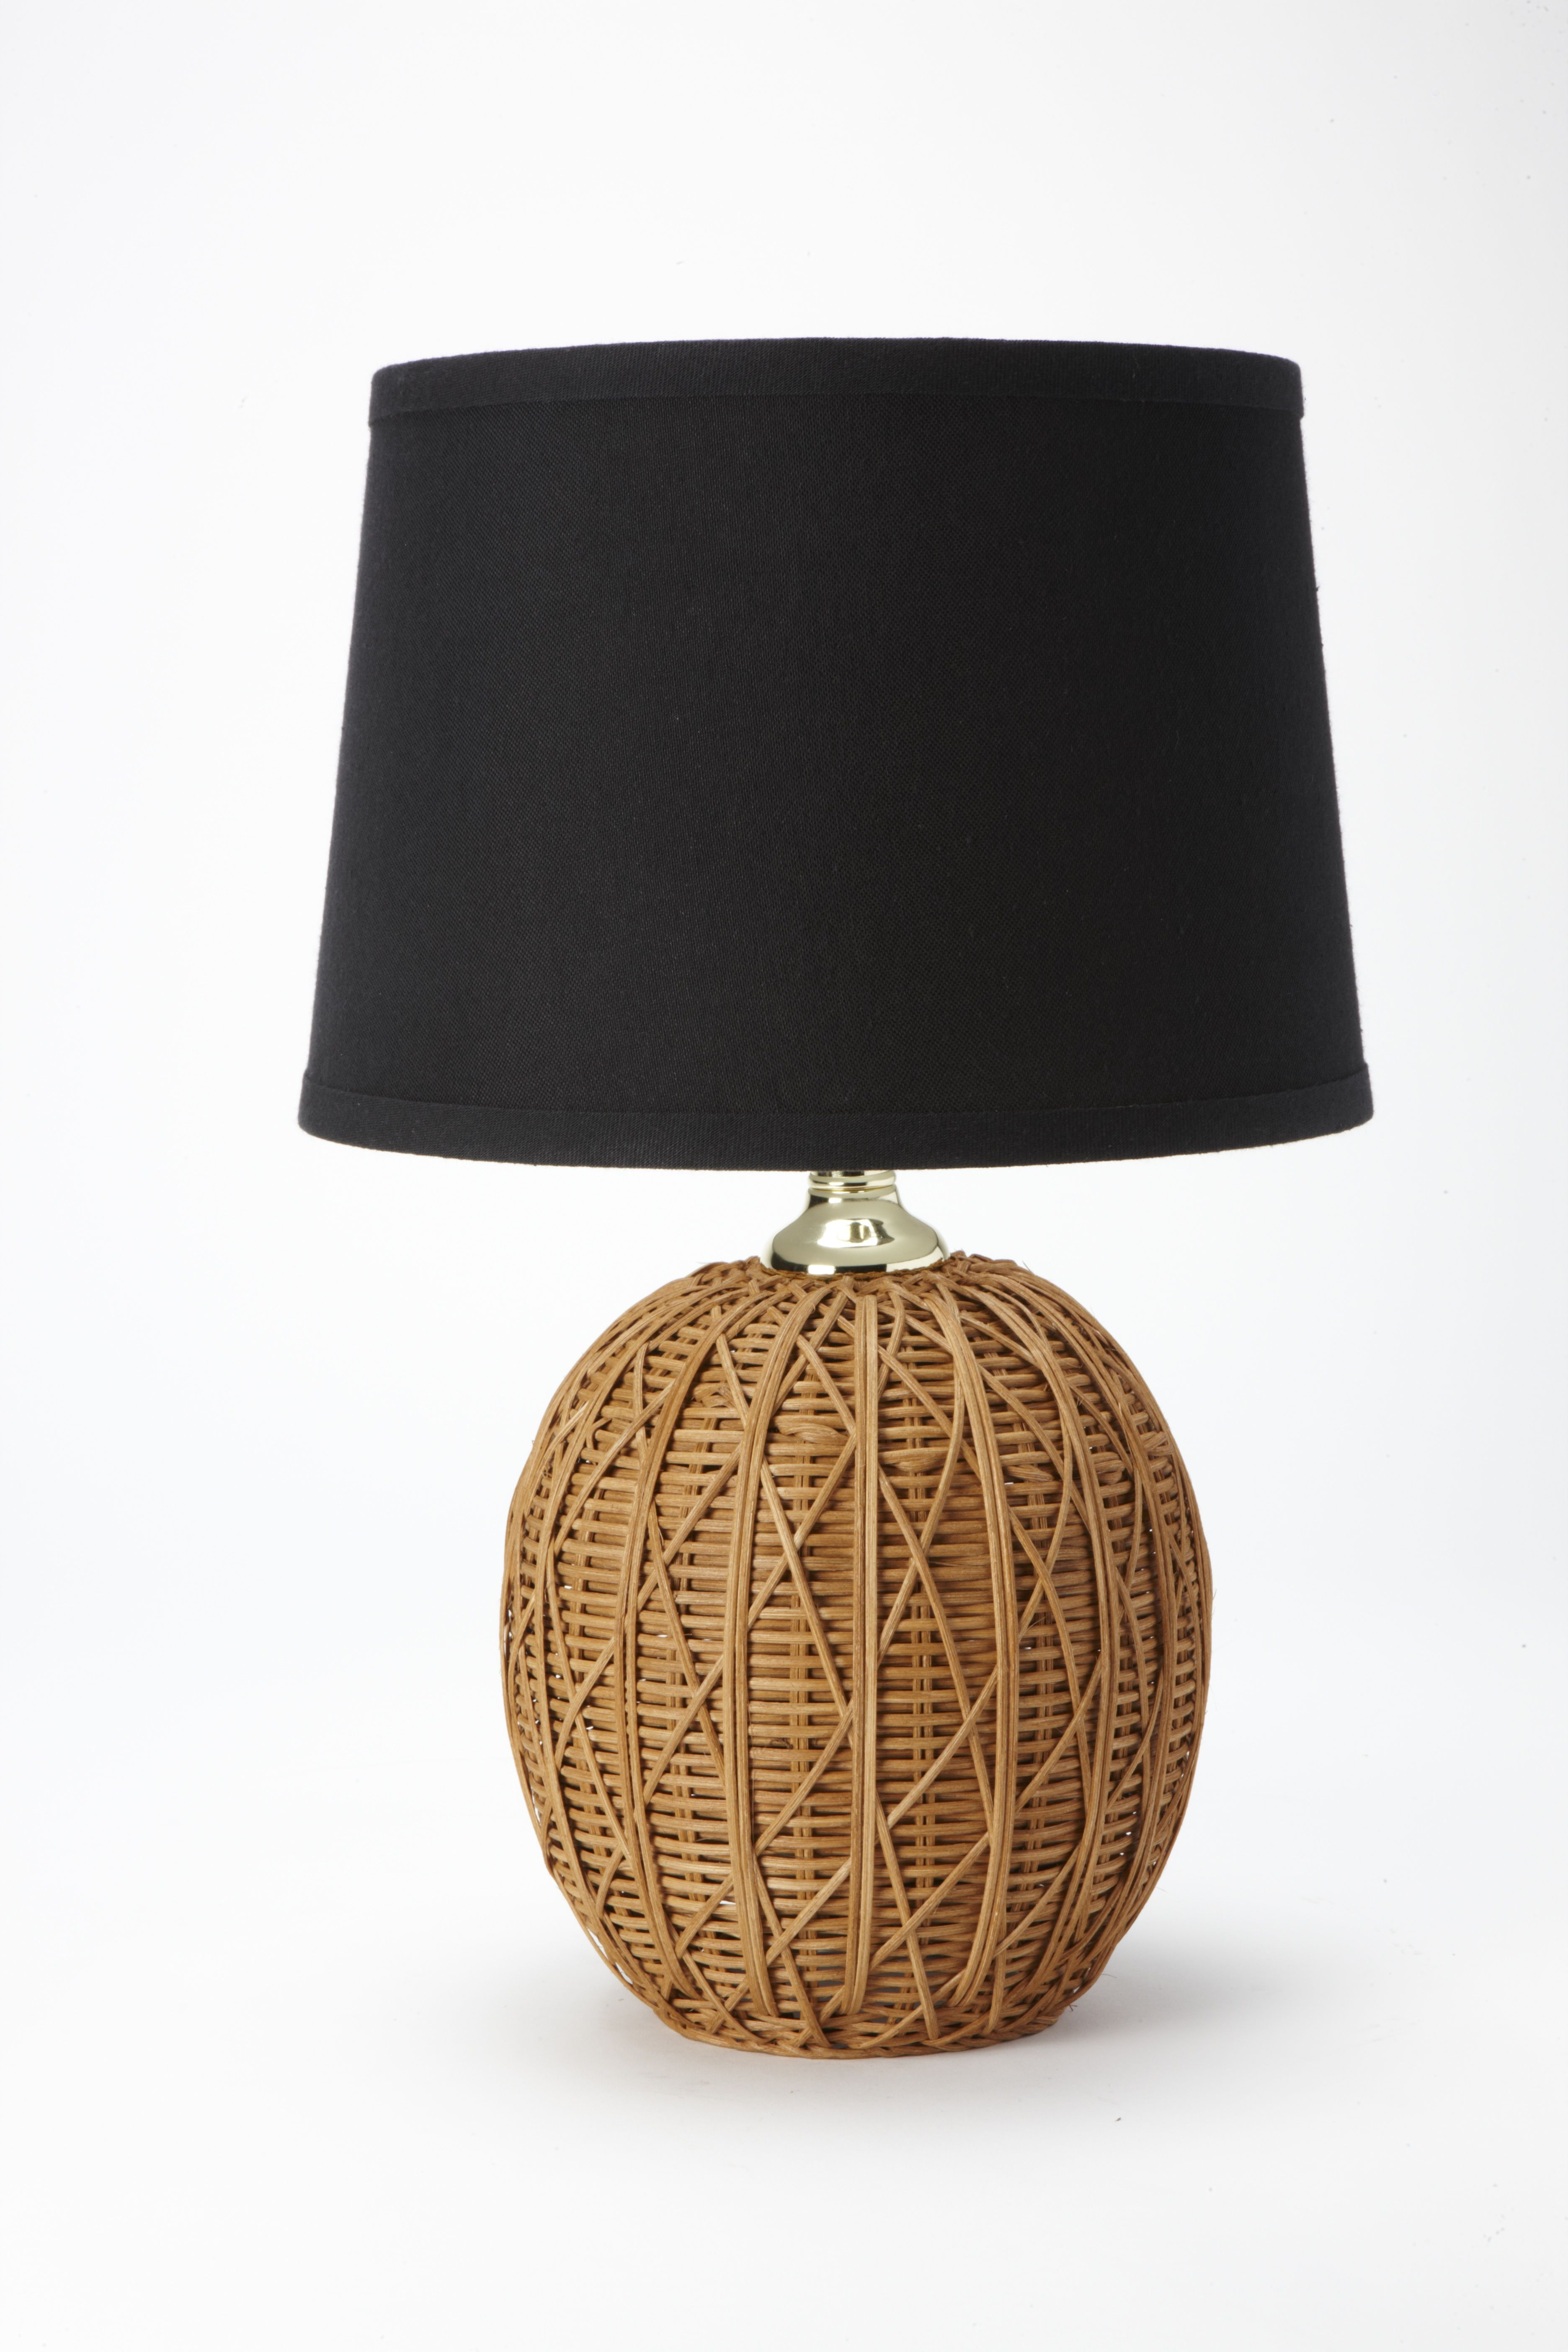 Nate Berkus Woven Rattan Table Lamp Base with Black Linen Lamp ...:@Nate Berkus Woven Rattan Table Lamp Base with Black Linen Lamp Shade,Lighting